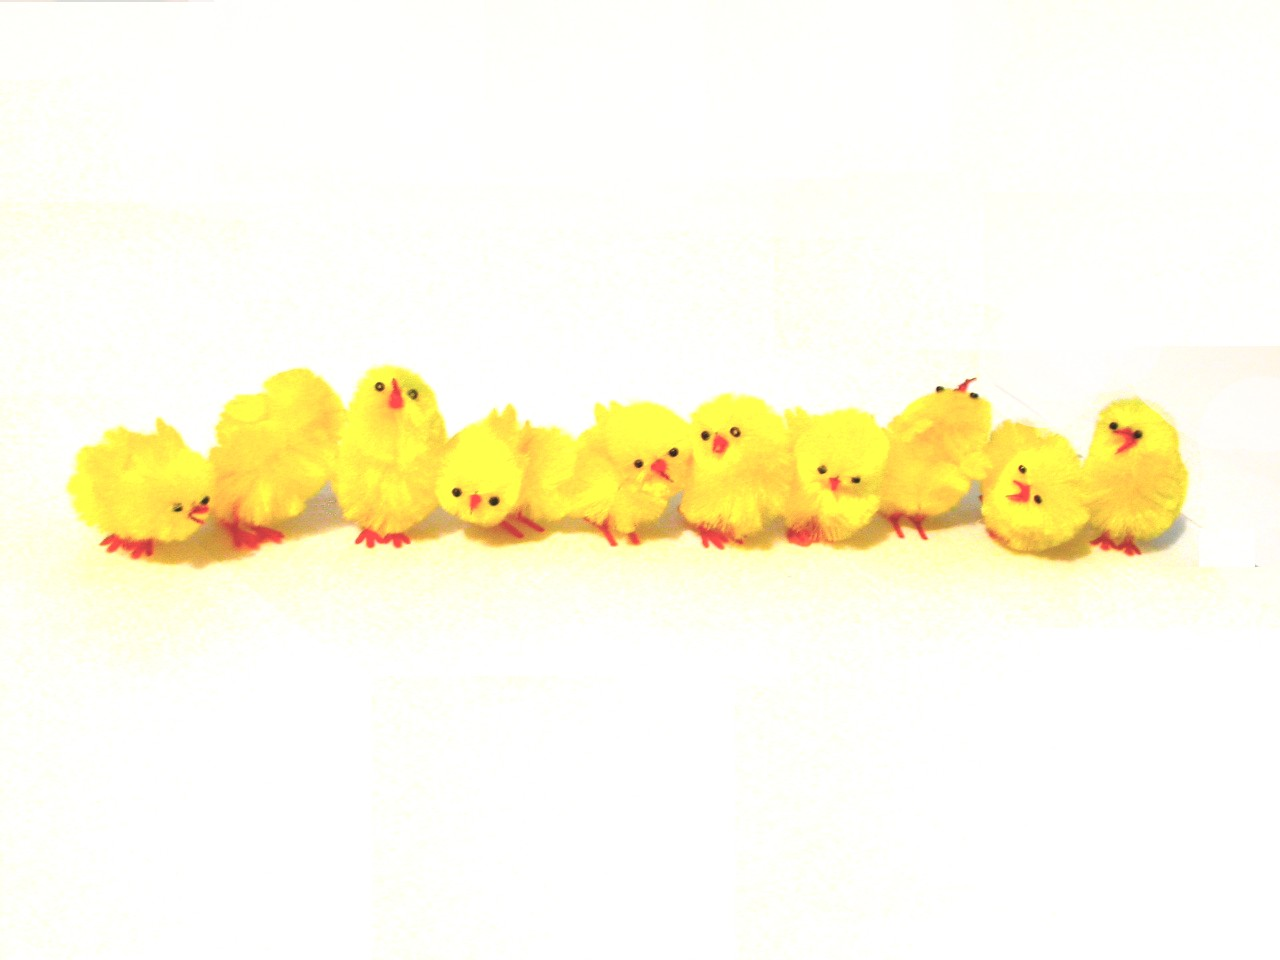 Easter Chick Wallpaper 1280x960